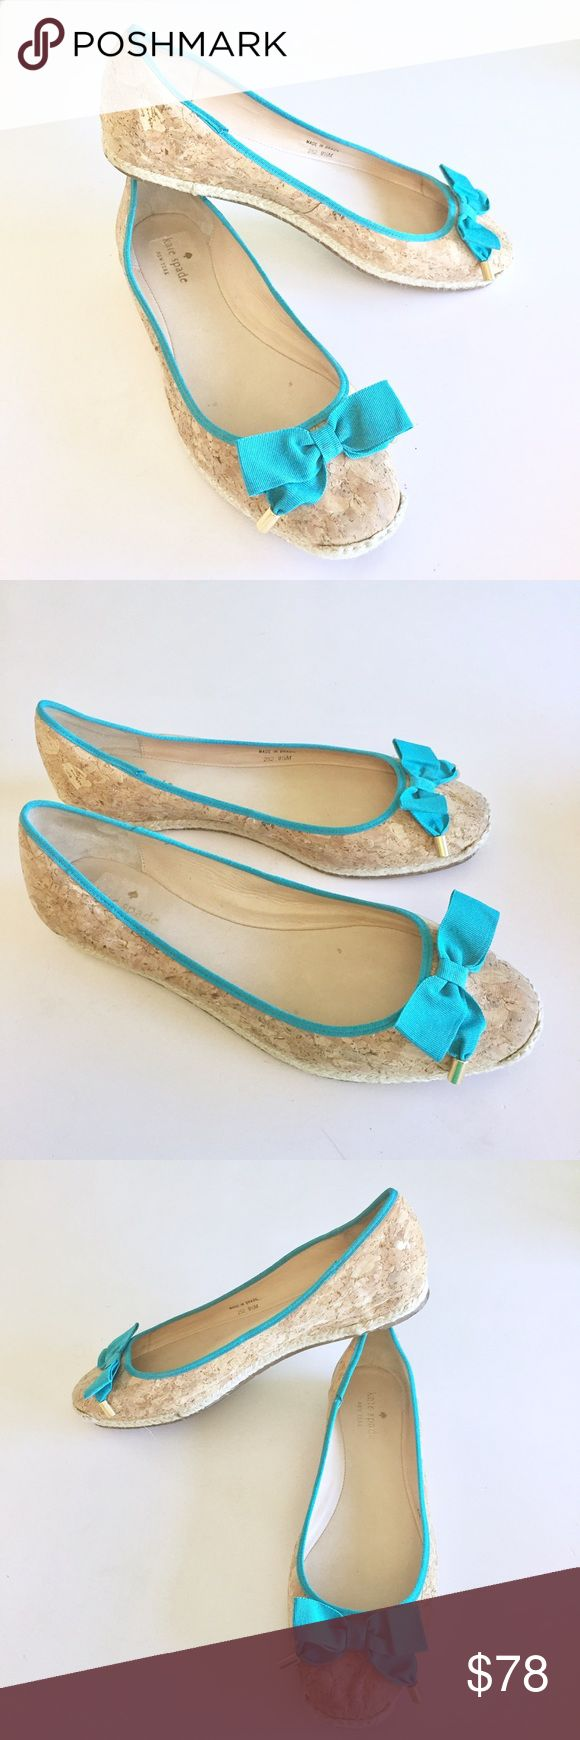 Kate Spade Cork Espadrille Flats Up for sale in great preowned condition pair of Kate Spade Cork Flats Size 9.5. Please see photos for details. Check out my closet, bundle and give me your offer!  #ba003 kate spade Shoes Espadrilles